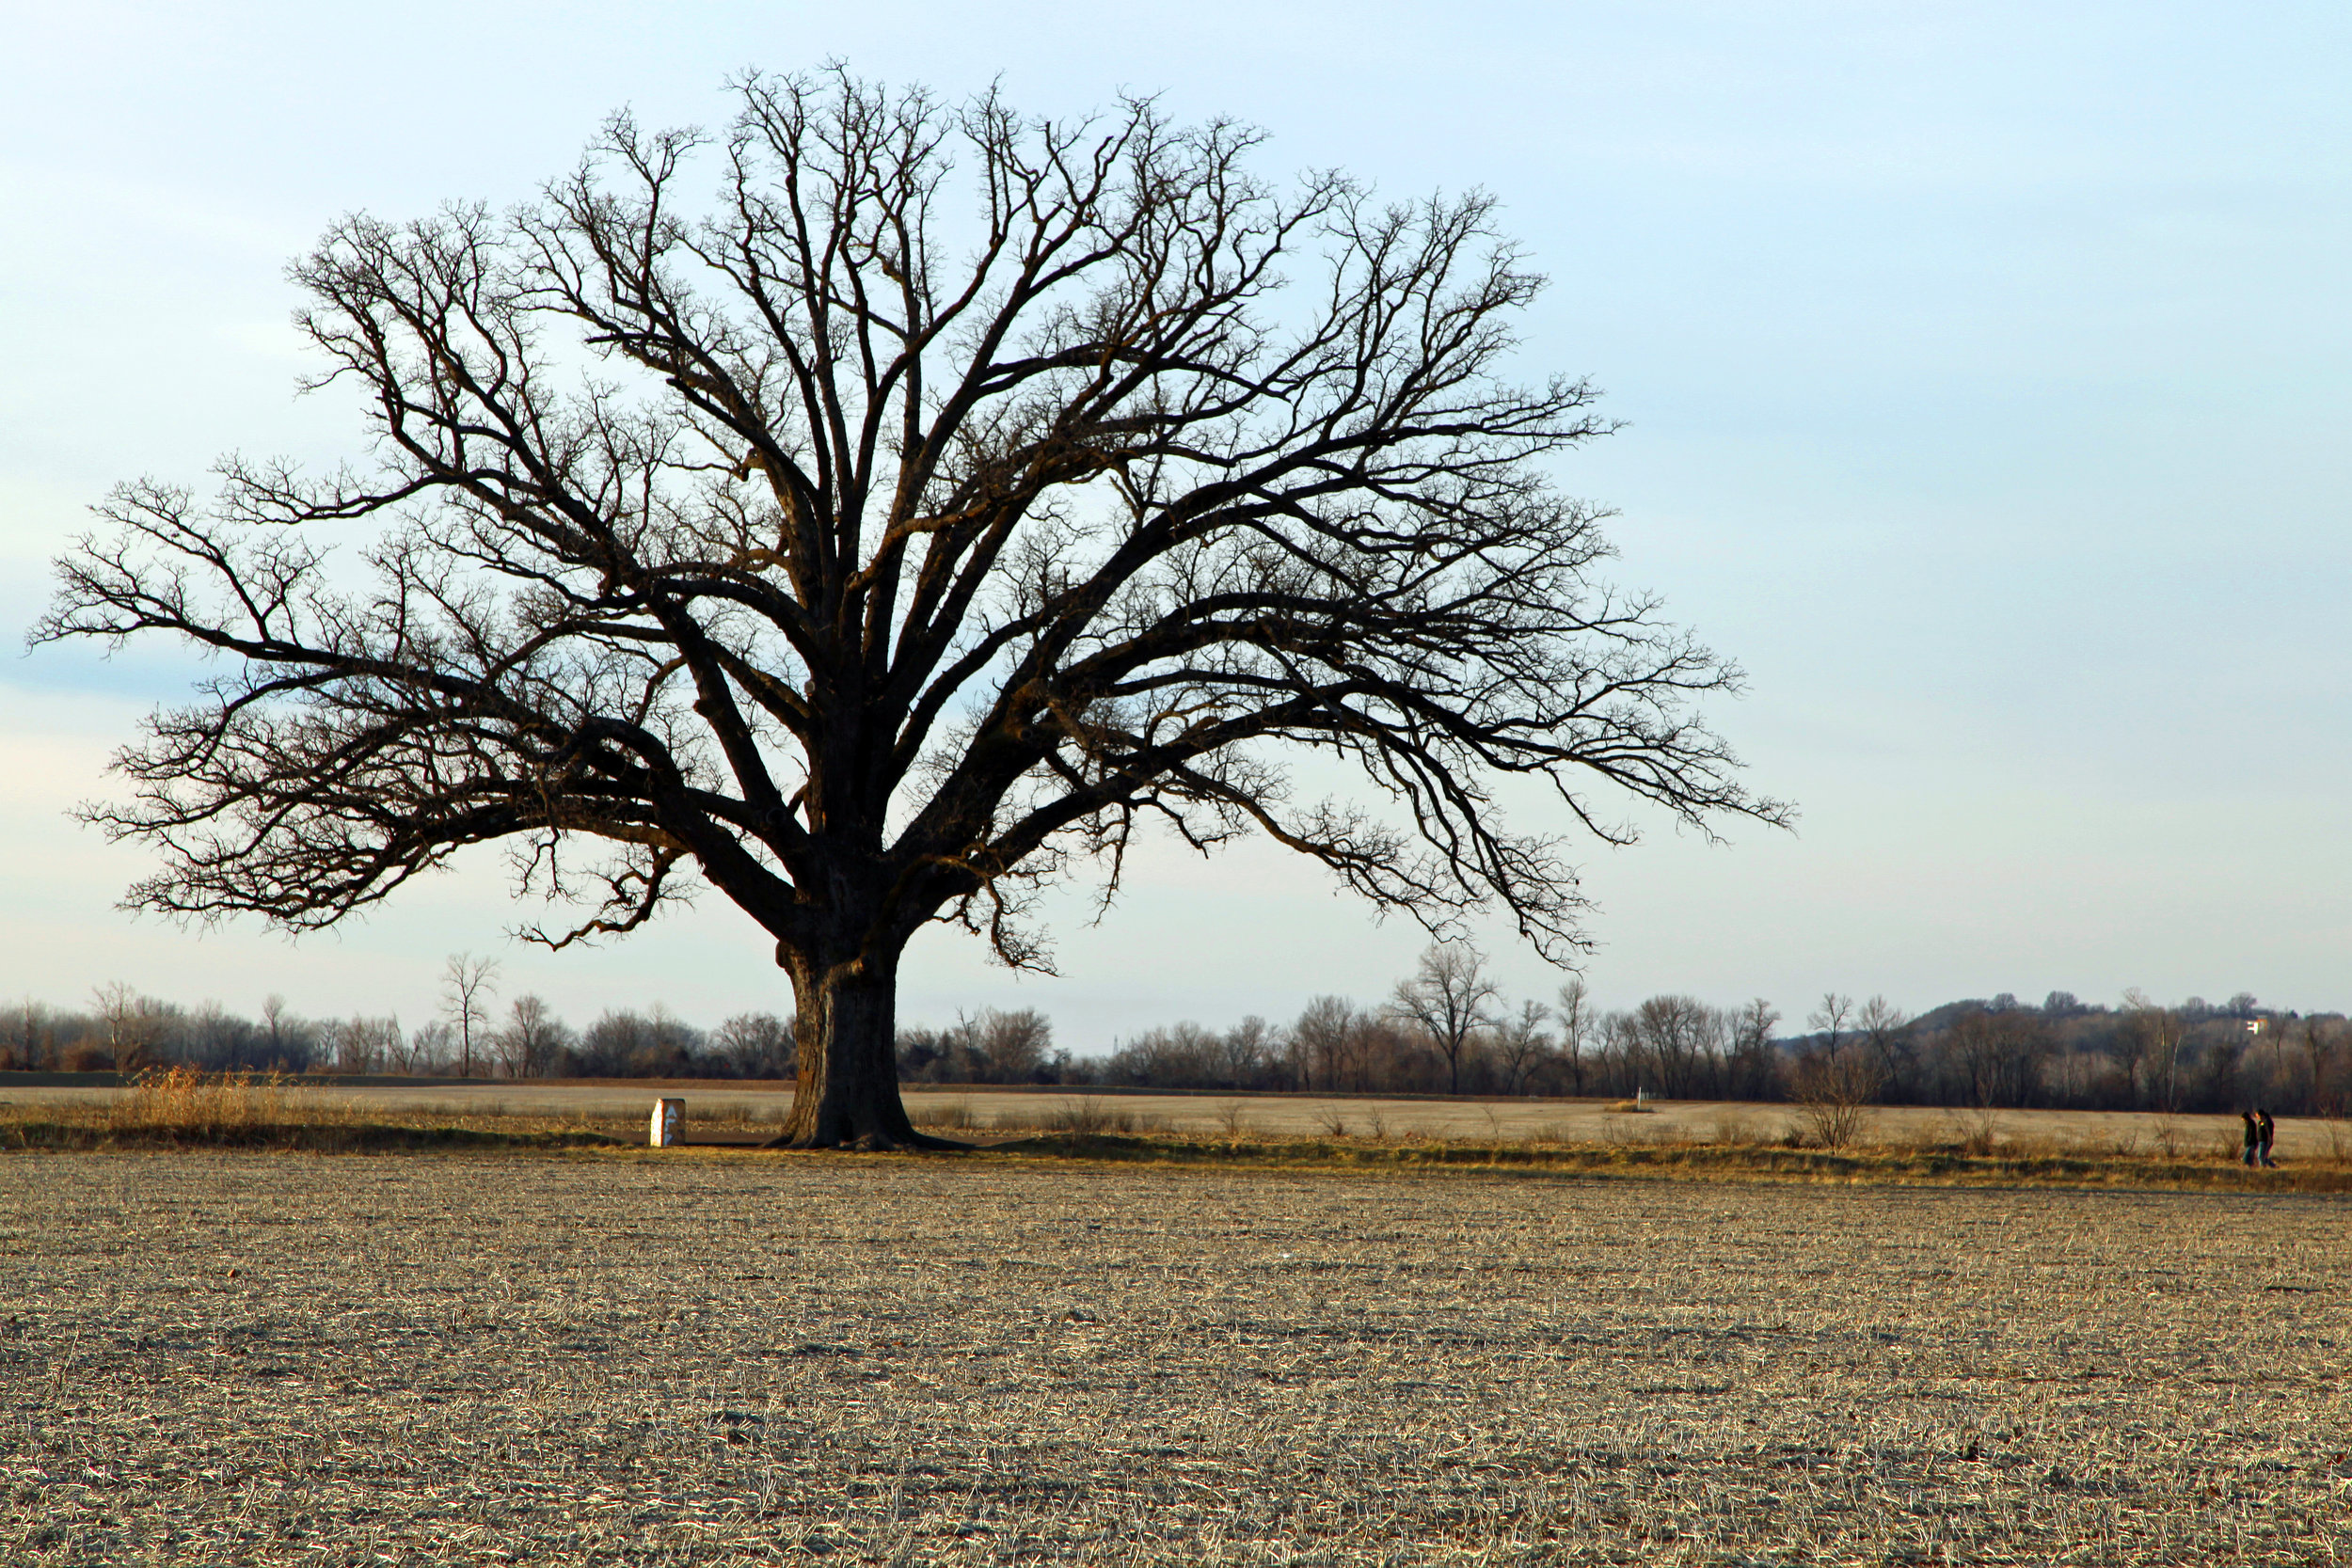 """""""   Two girls at Bur Oak Tree McBaine   """" by    Graham Higgs    is licensed under    CC BY 2.0"""